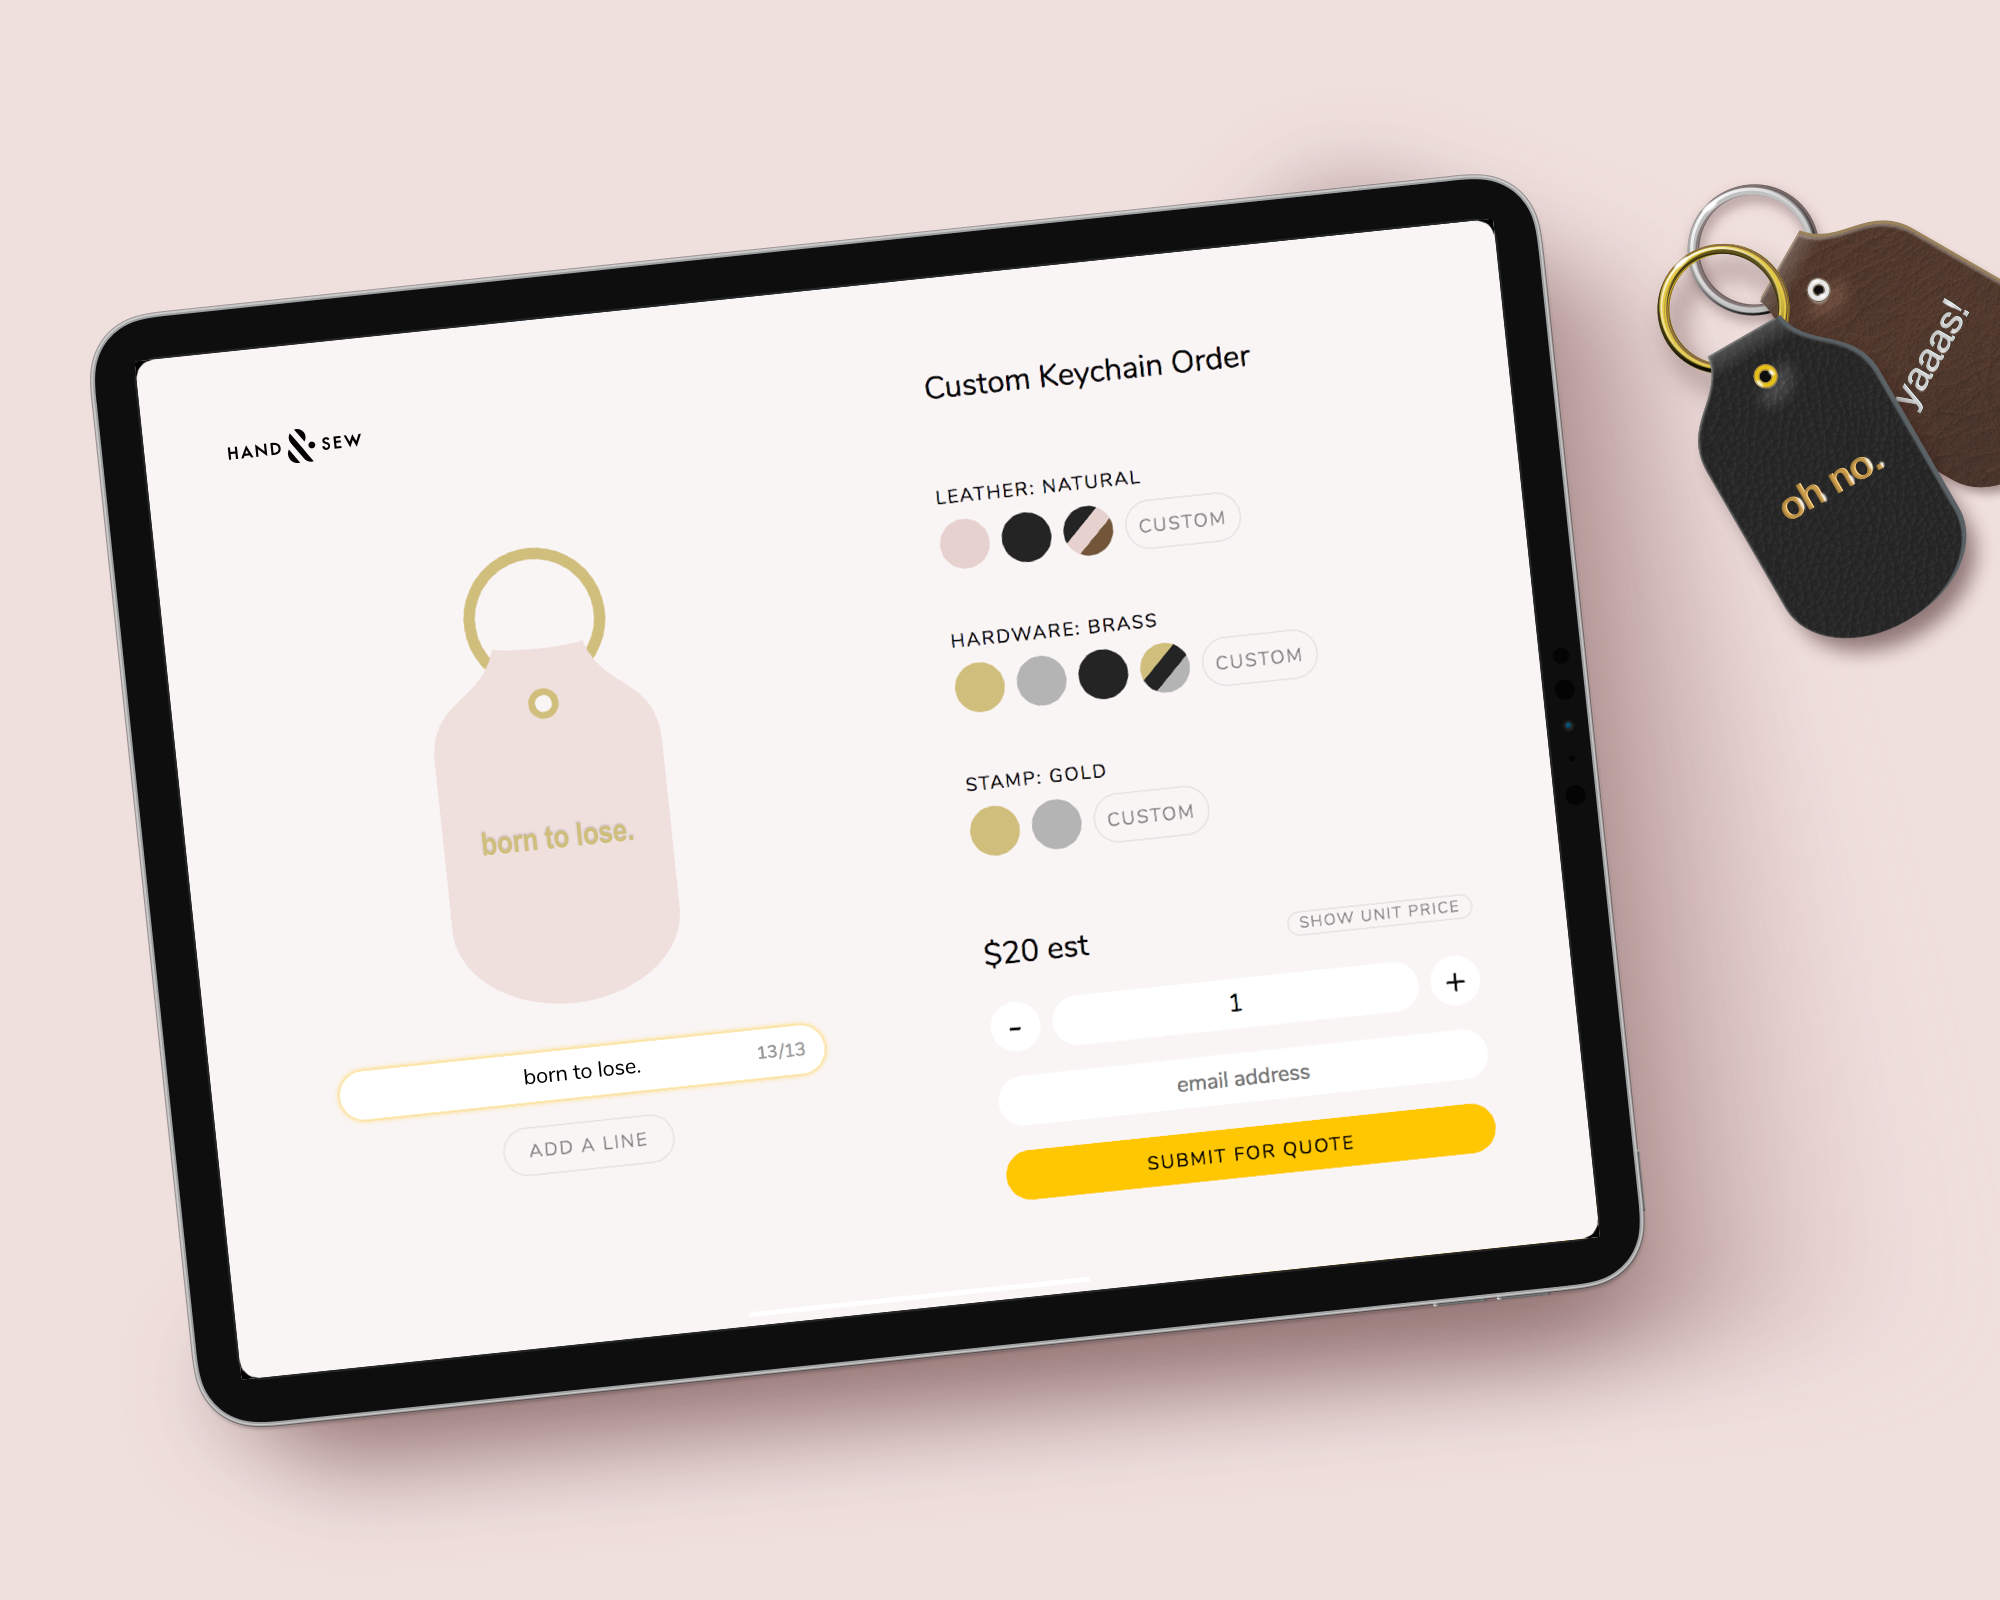 Configure yours - With our configuration tool, you can experiment with all the different options for customized keychains.Customize keychains ➝